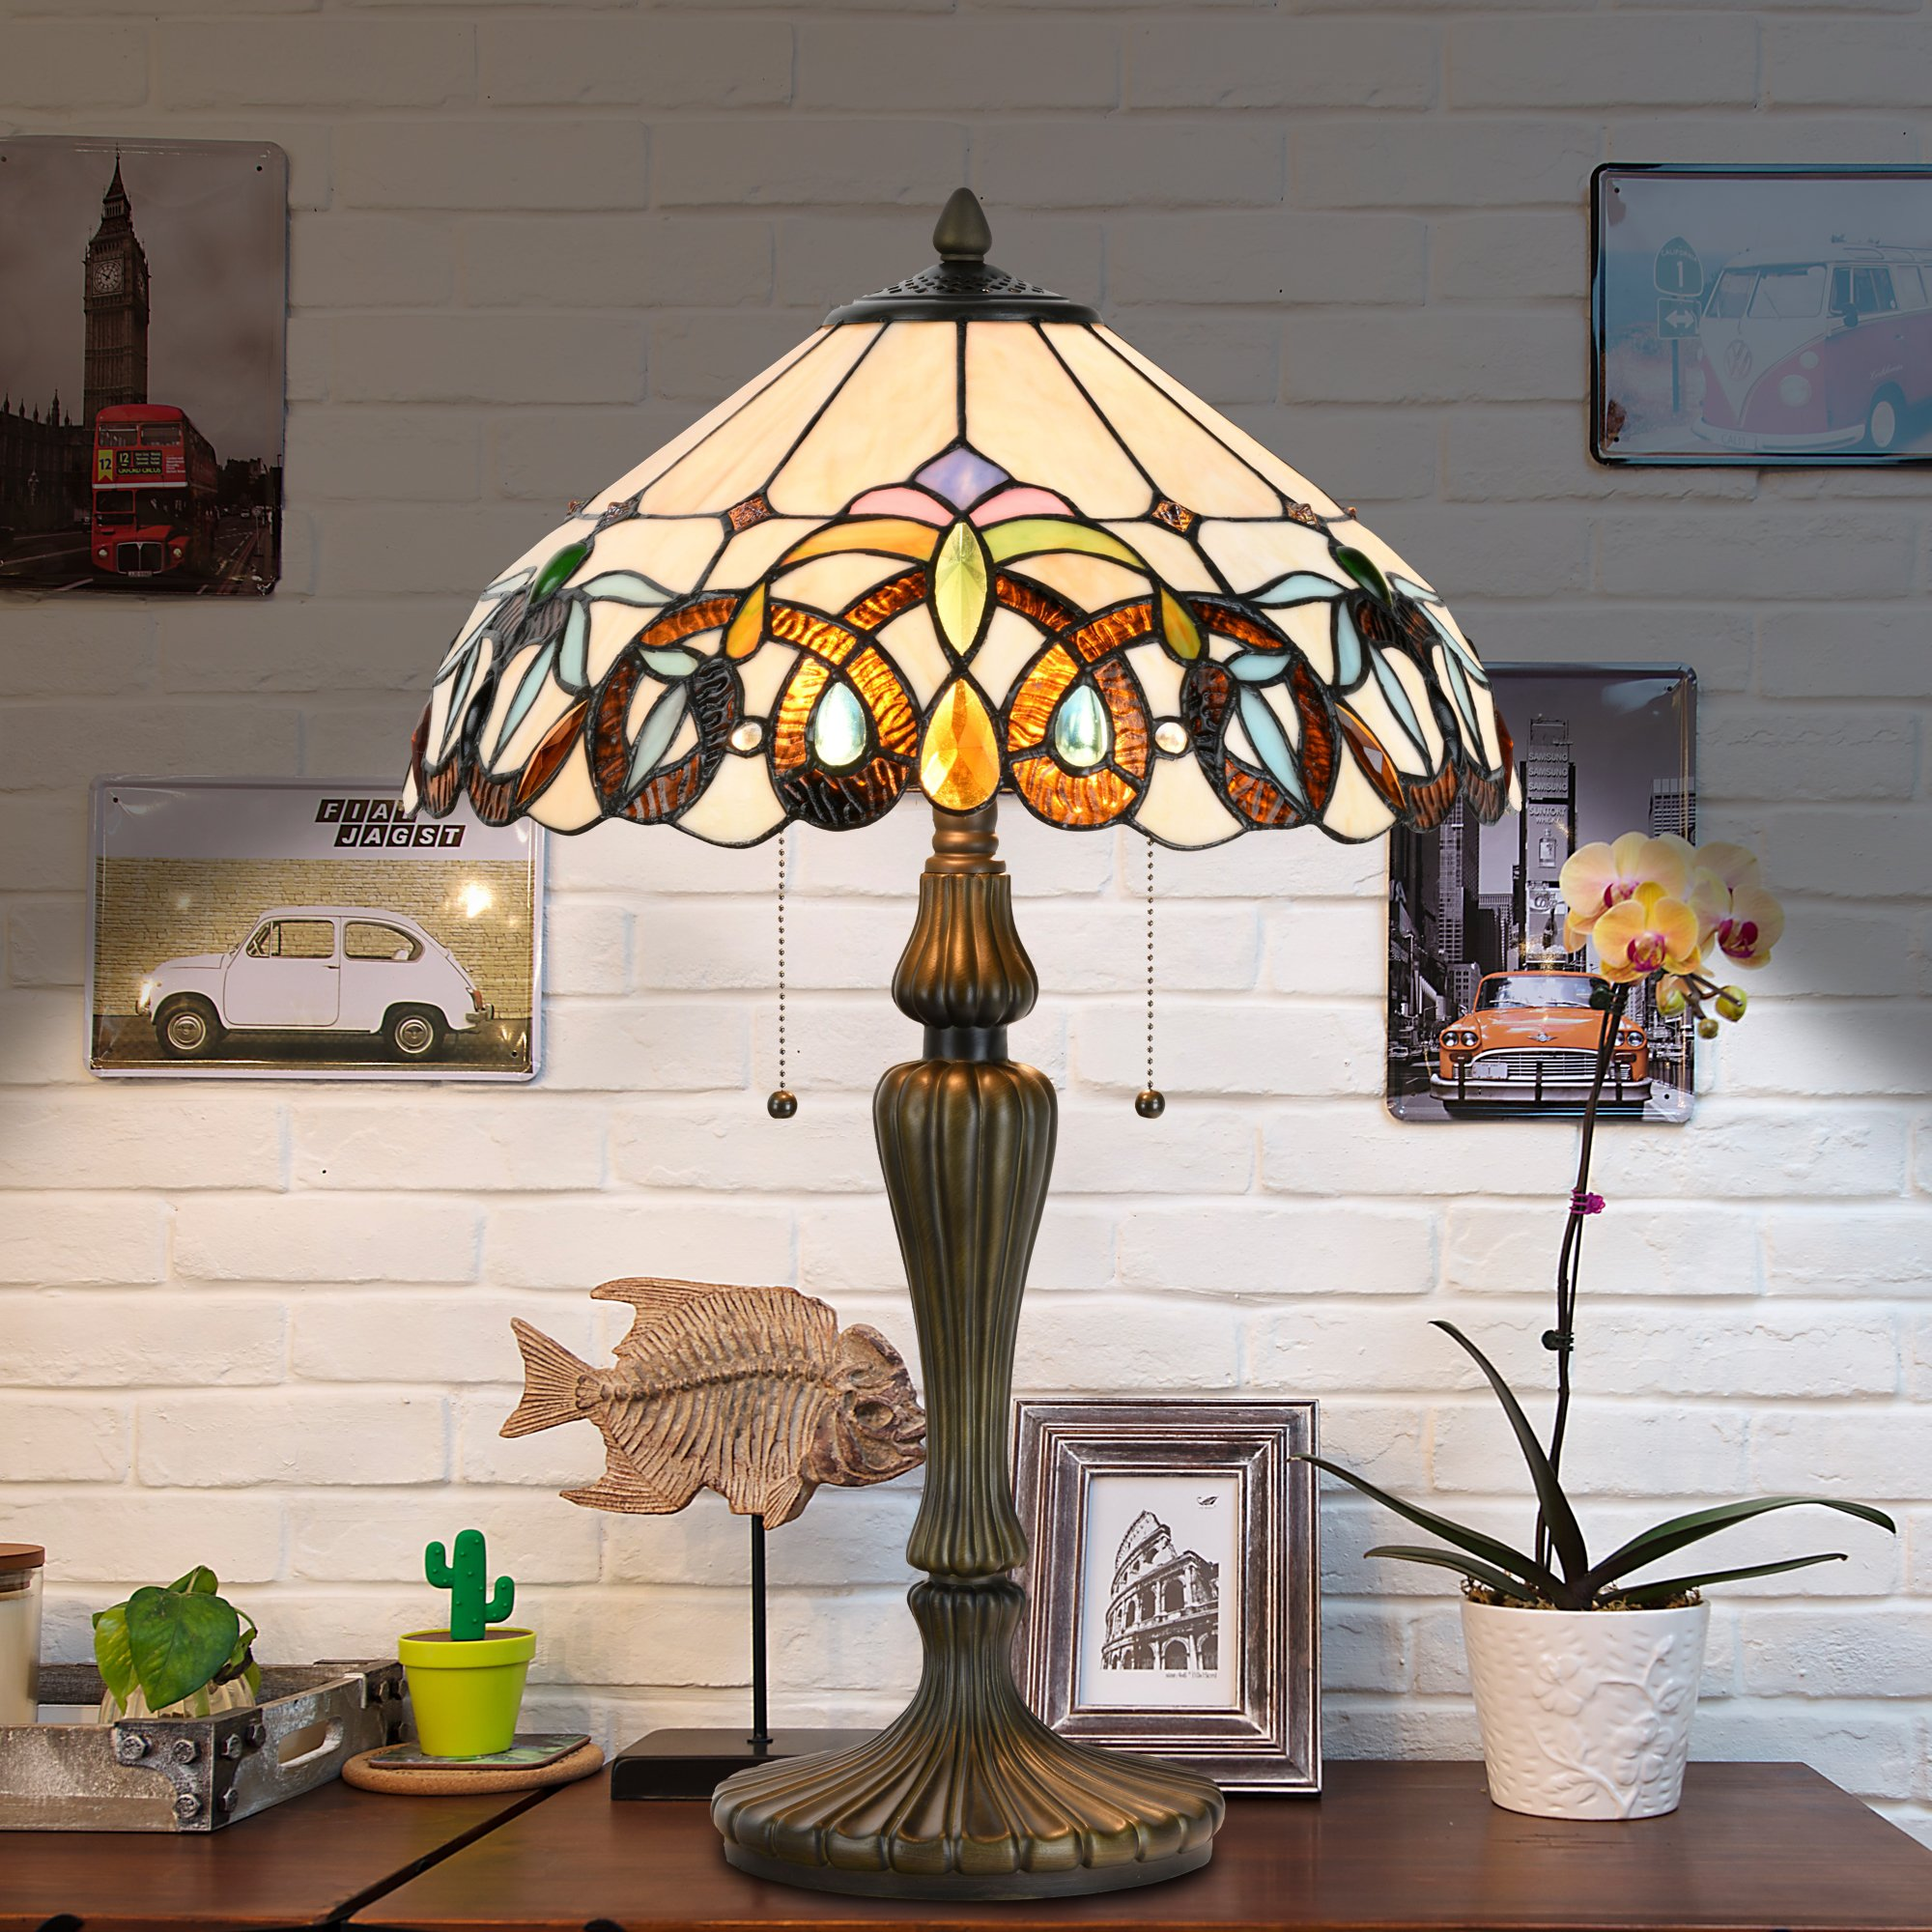 Cloud Mountain Tiffany Style 15.5'' Lampshade Table Lamp Baroque Stained Glass Desk Lamp Home Decor Lighting